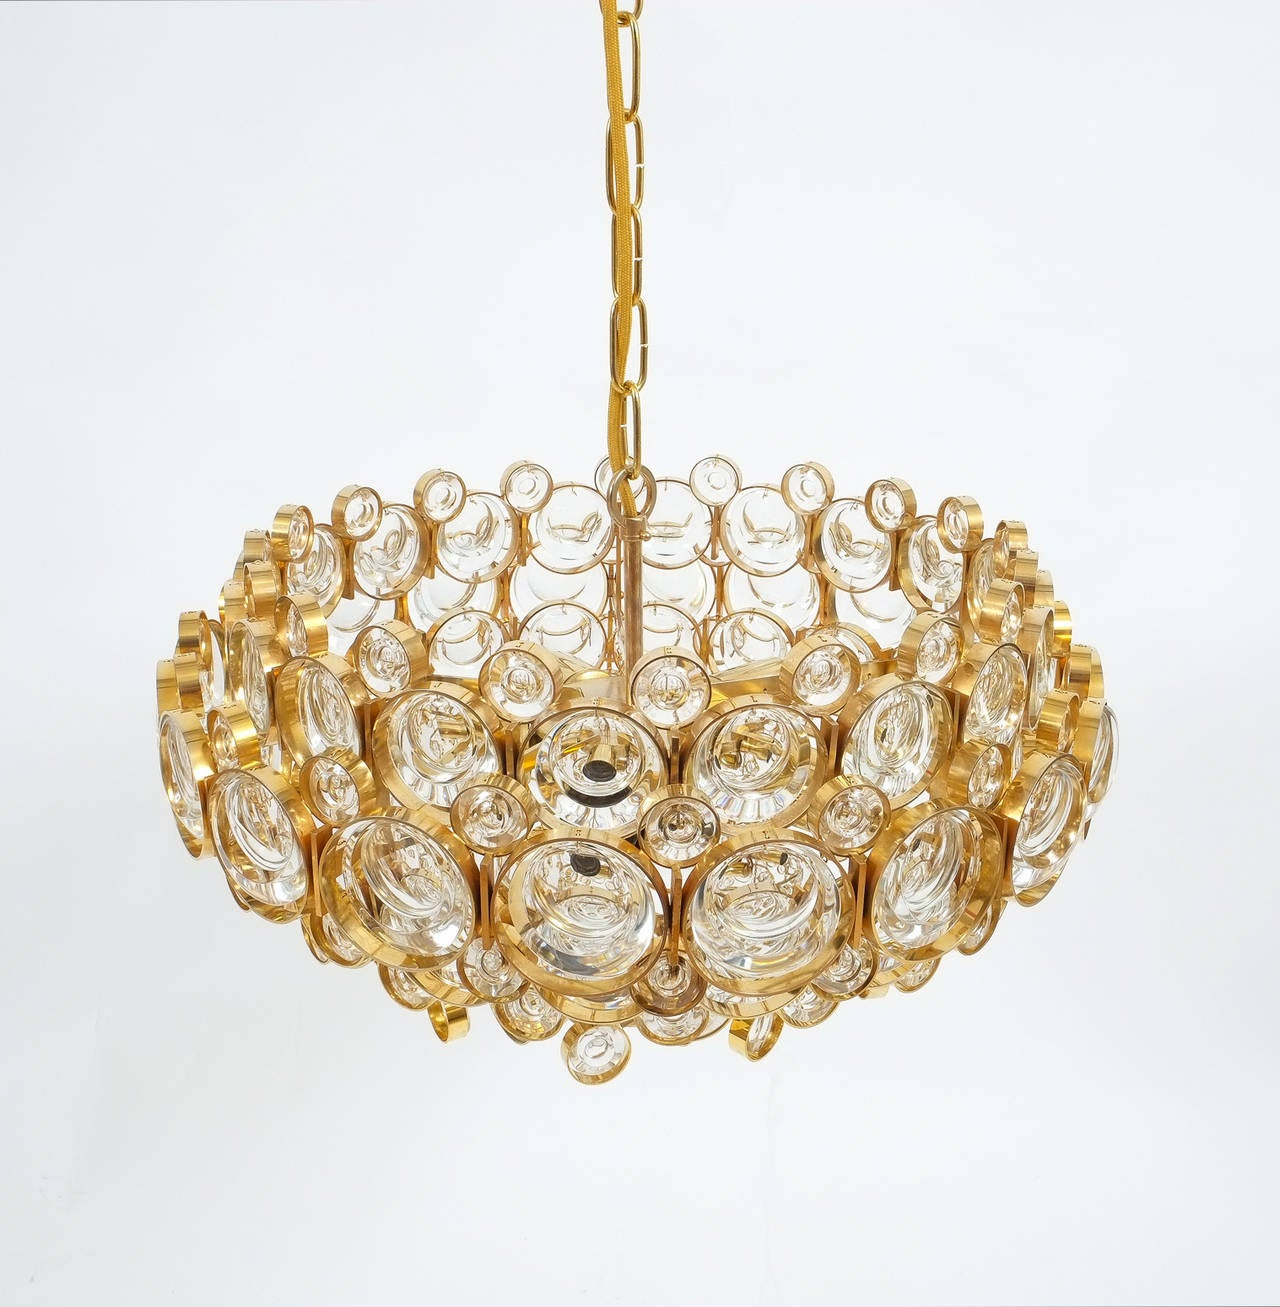 Mid-Century Modern Large Gold Palwa Brass and Glass Chandelier Lamp, Germany 1960 For Sale